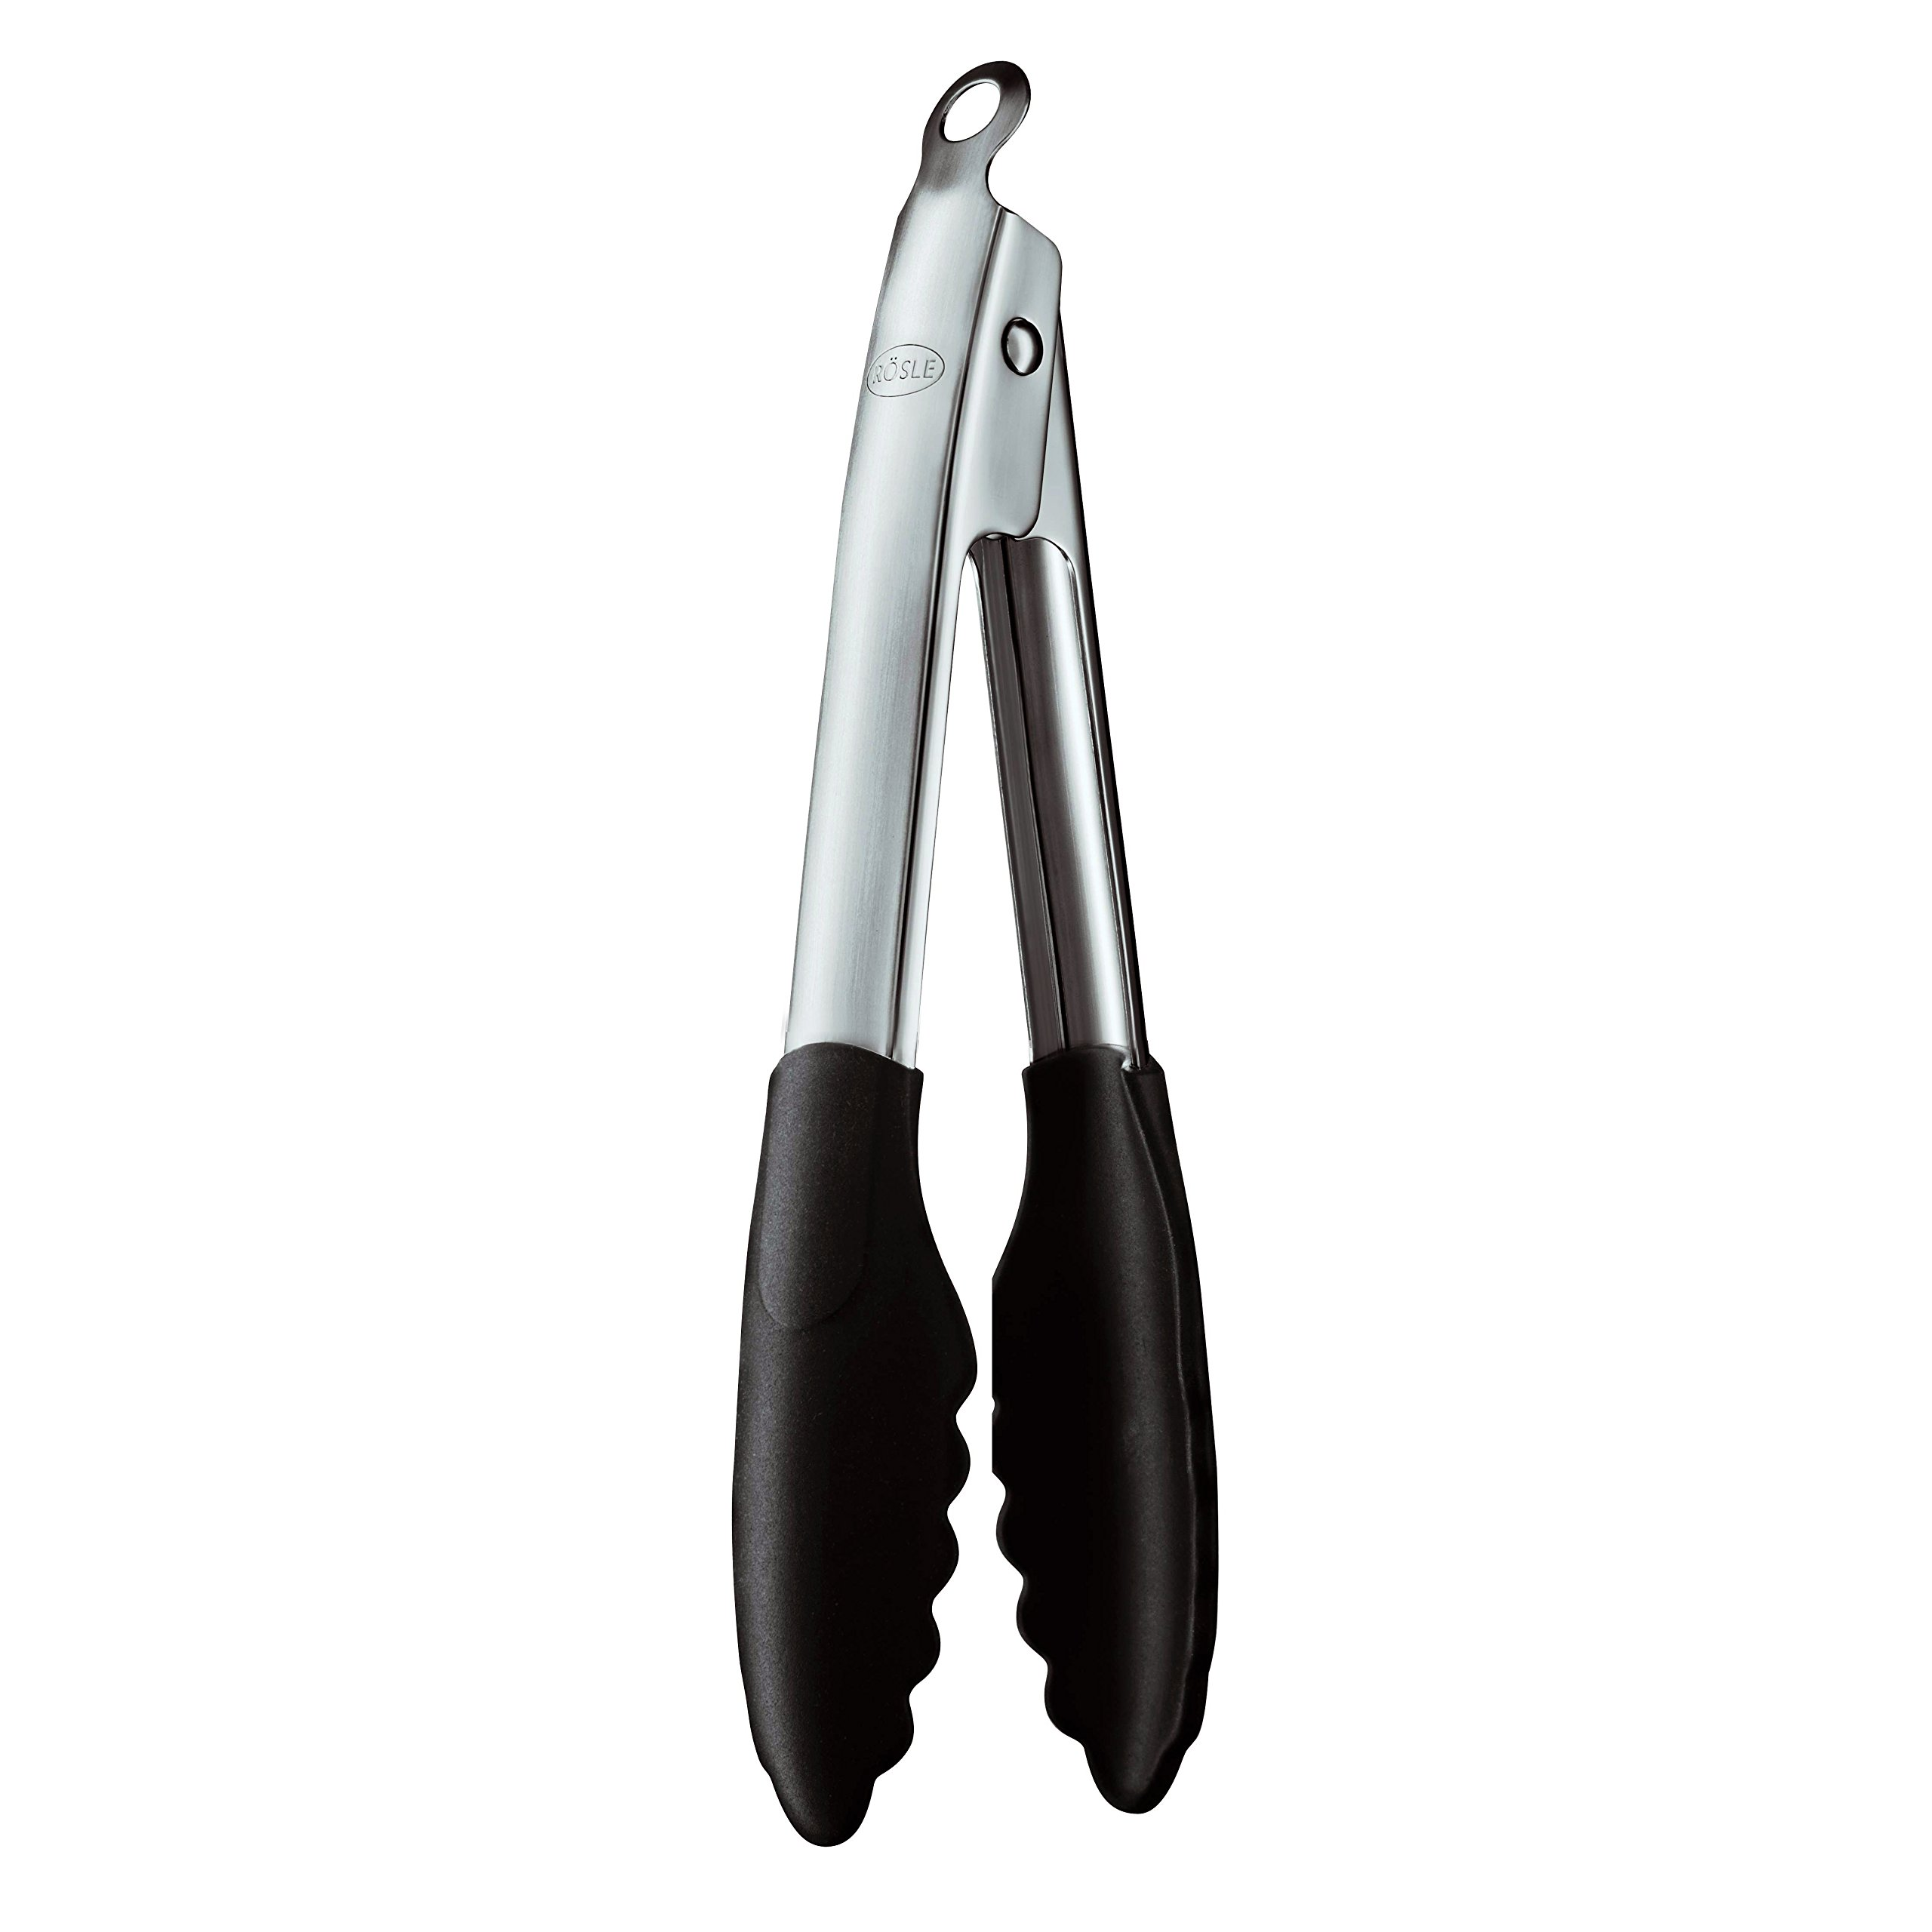 Rösle Stainless Steel 9-inch Silicone Coated Locking Tongs